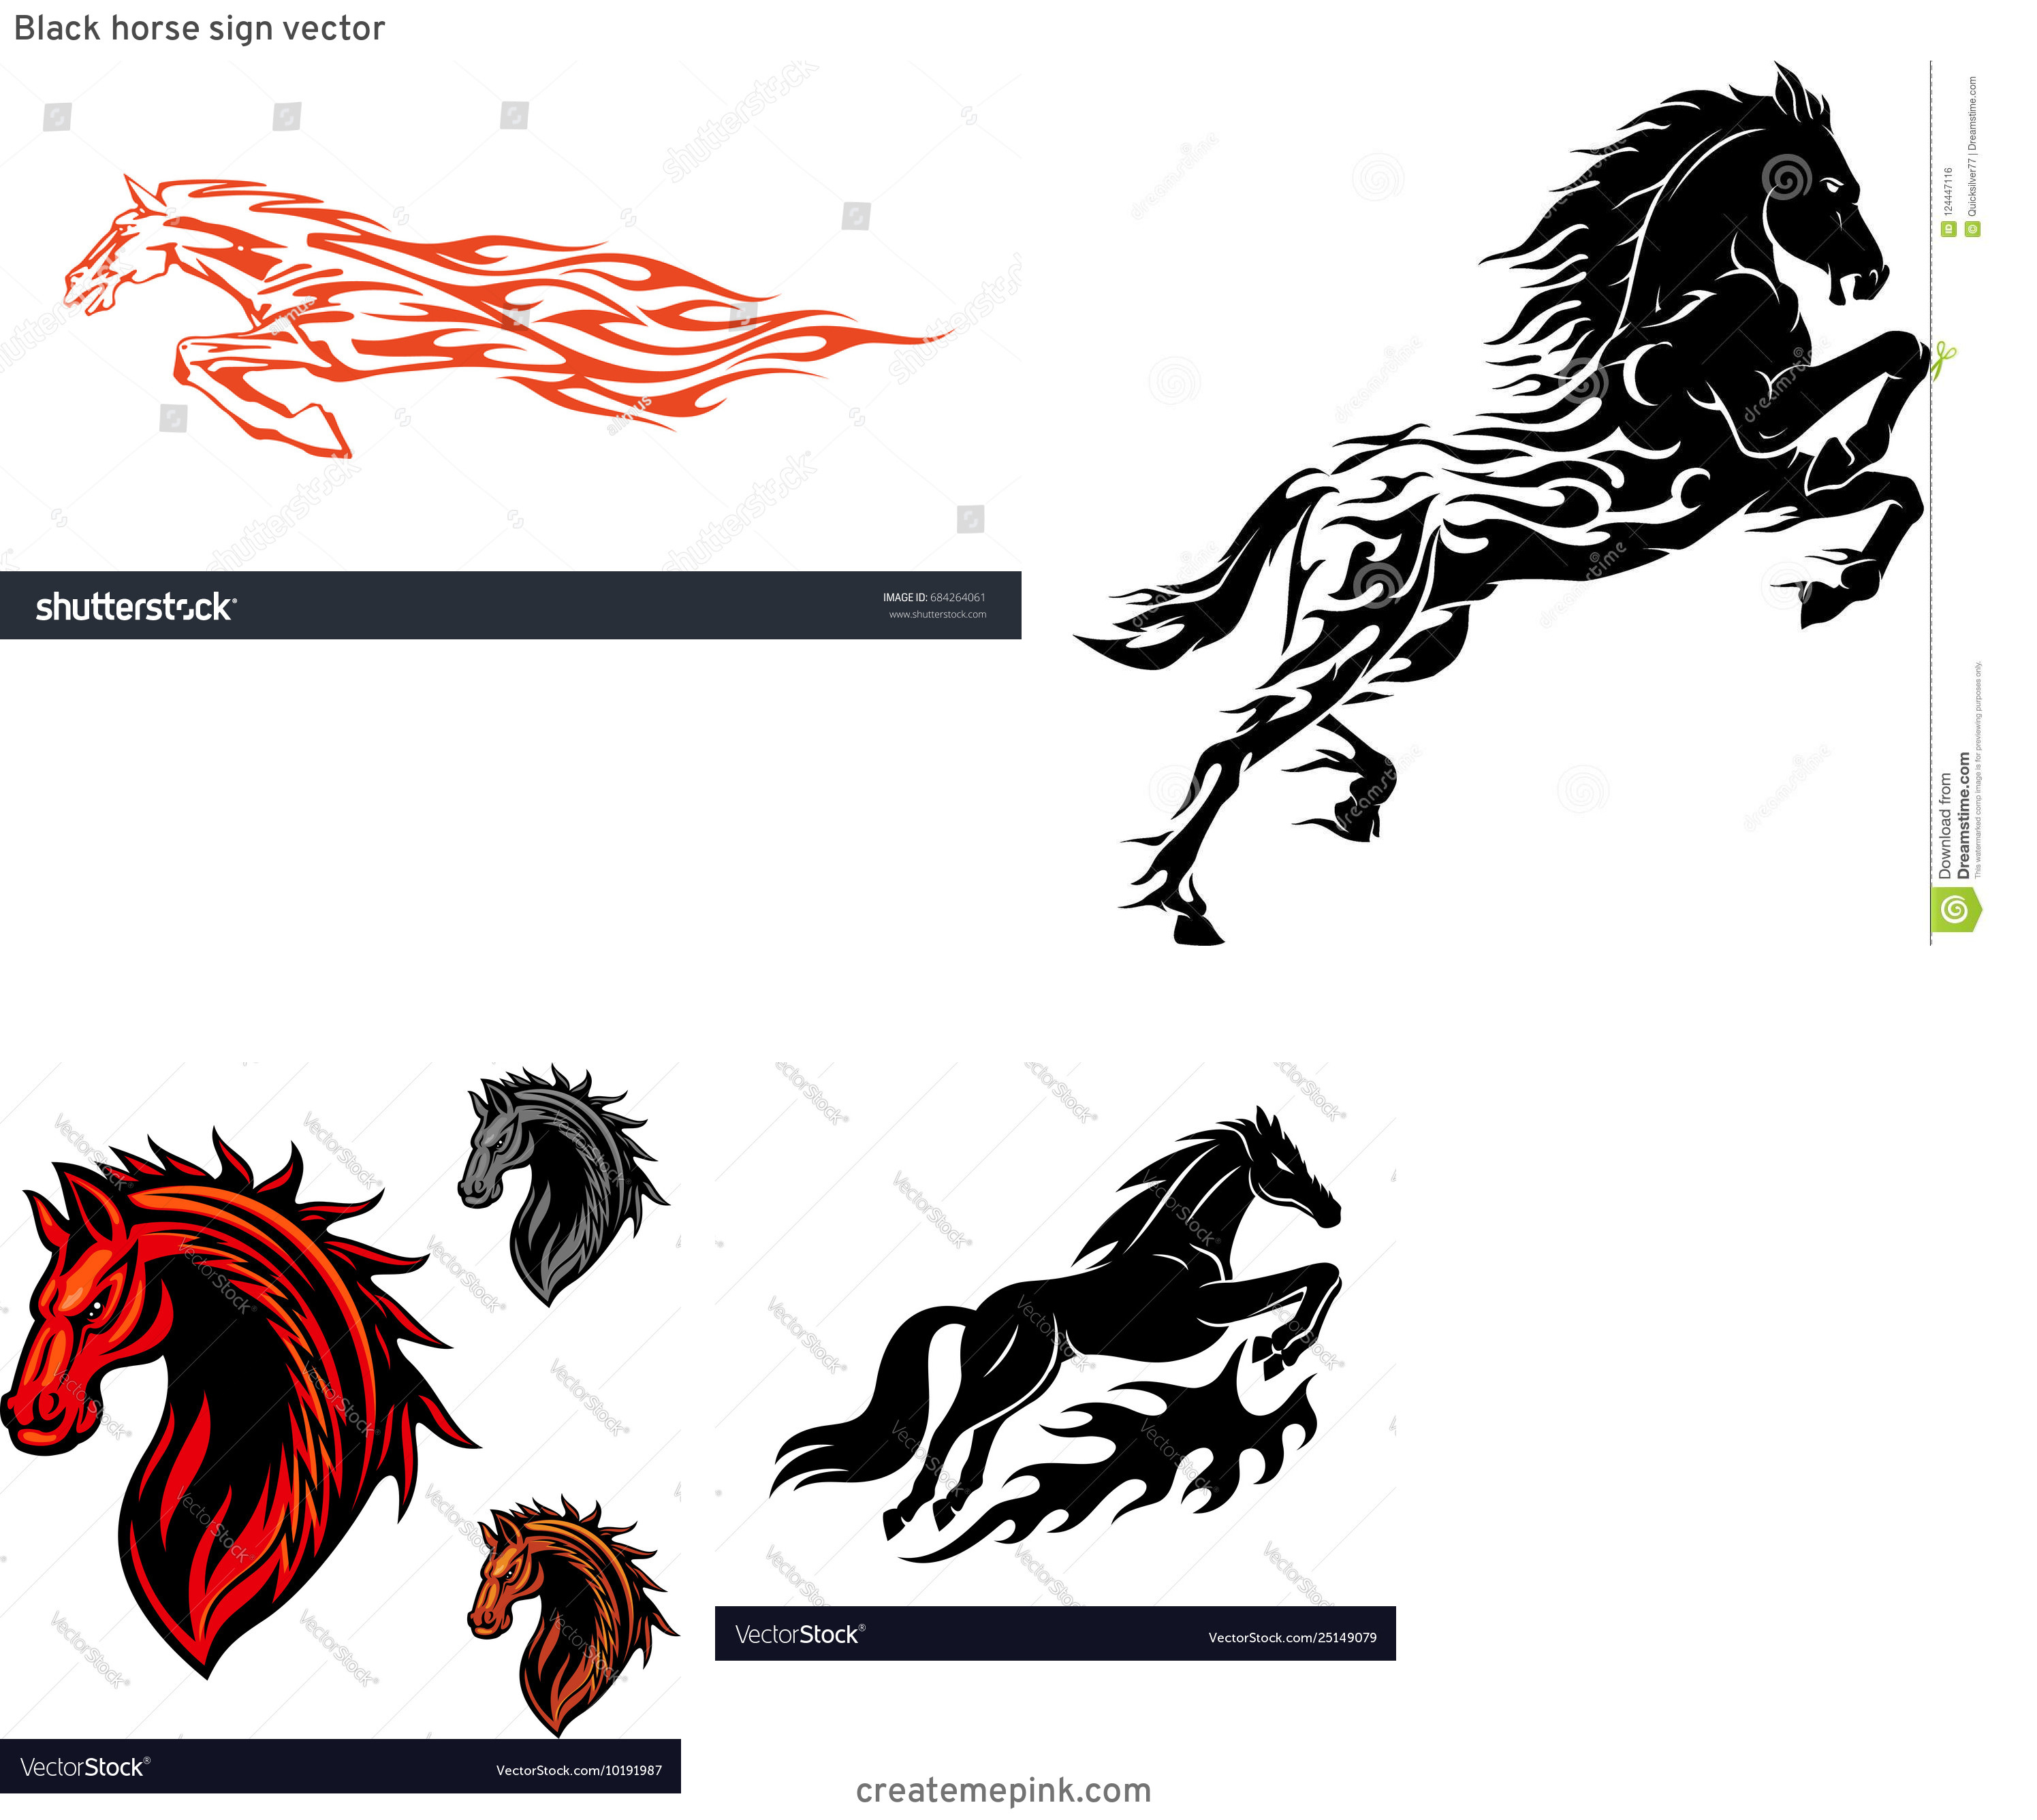 Horse With Flames Vector: Black Horse Sign Vector